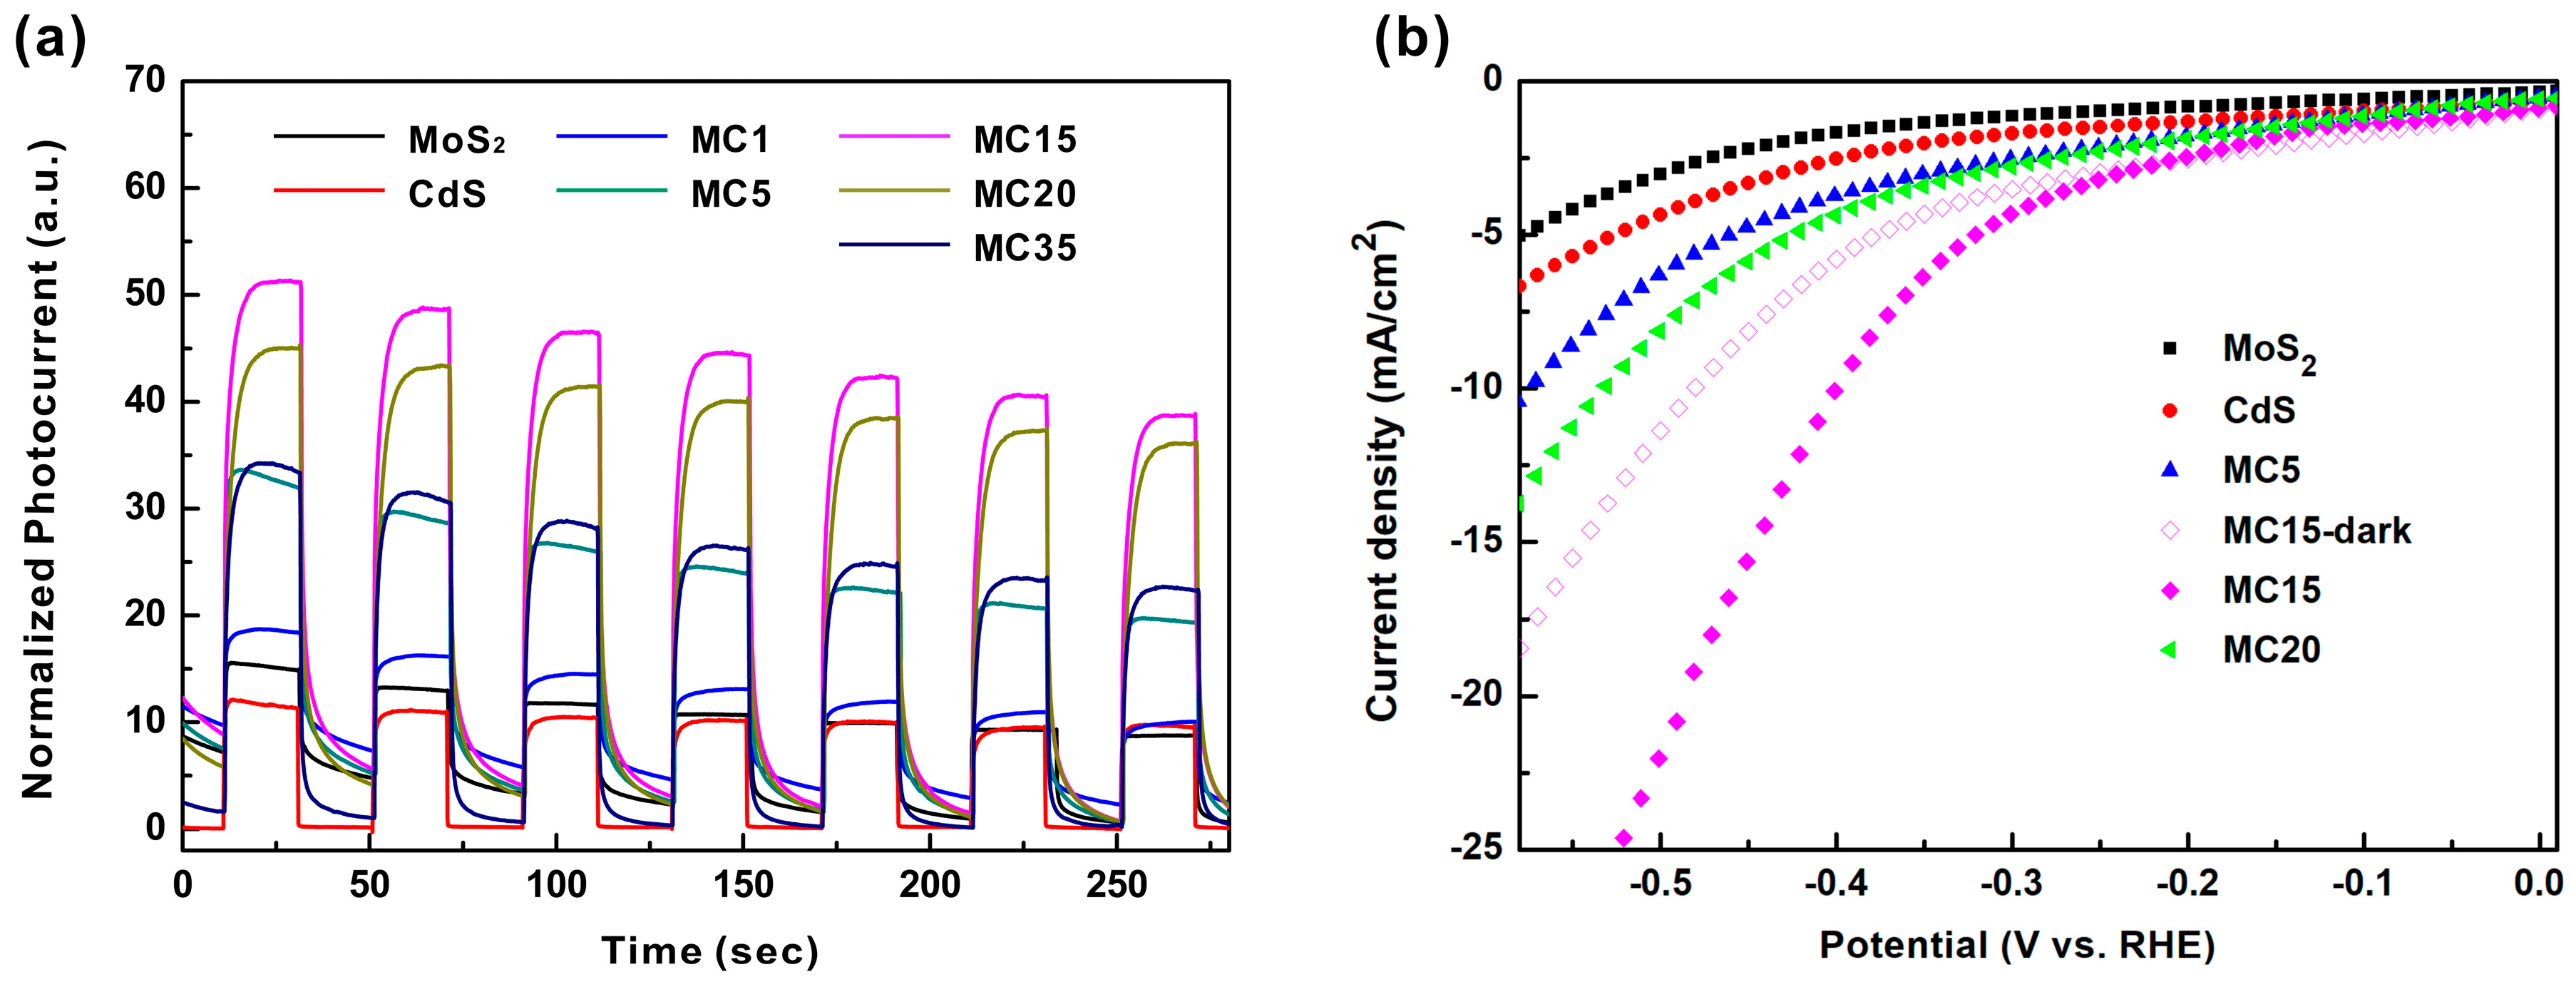 Catalysts | Free Full-Text | MoS2/CdS Heterostructure for Enhanced